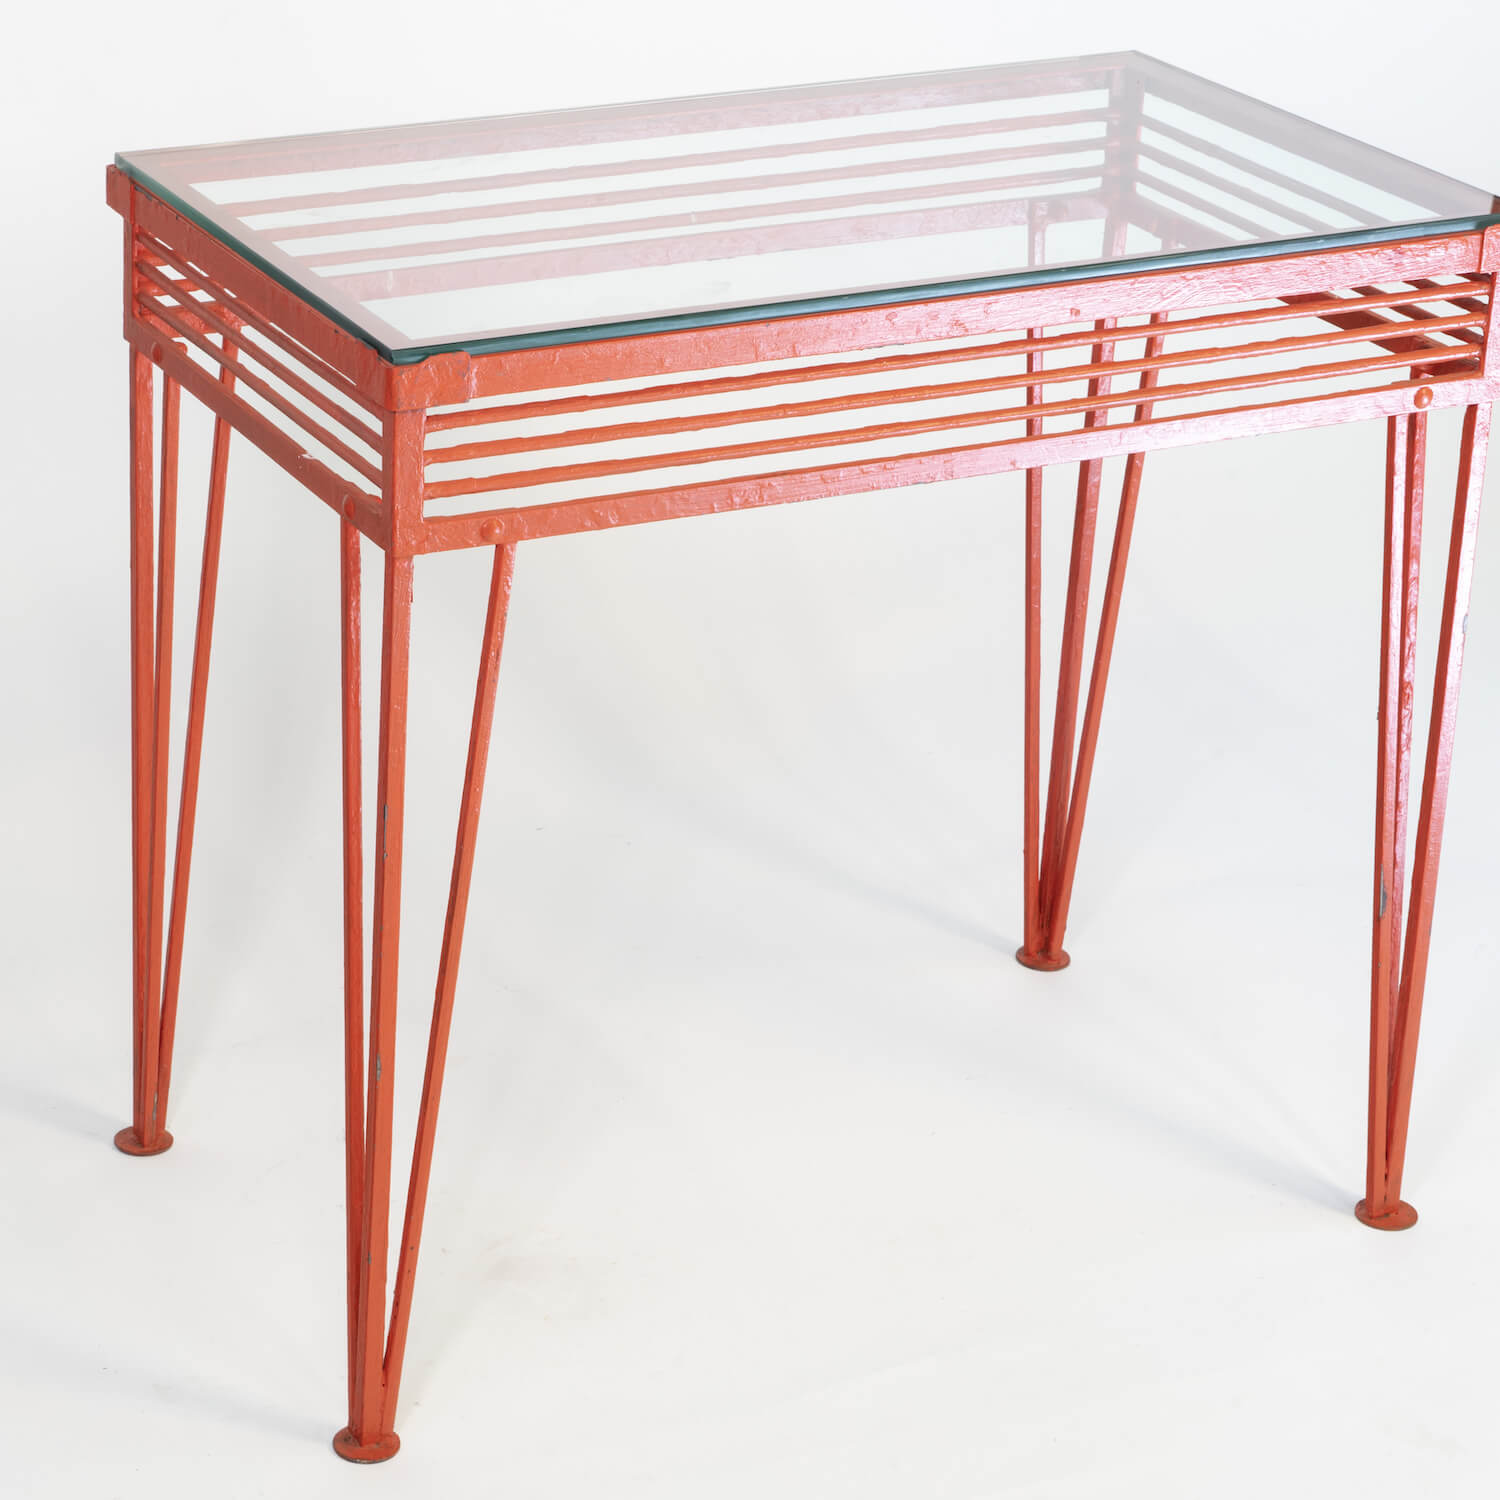 Iron And Glass Console. Attributed To Raymond Lowey, Circa 1930